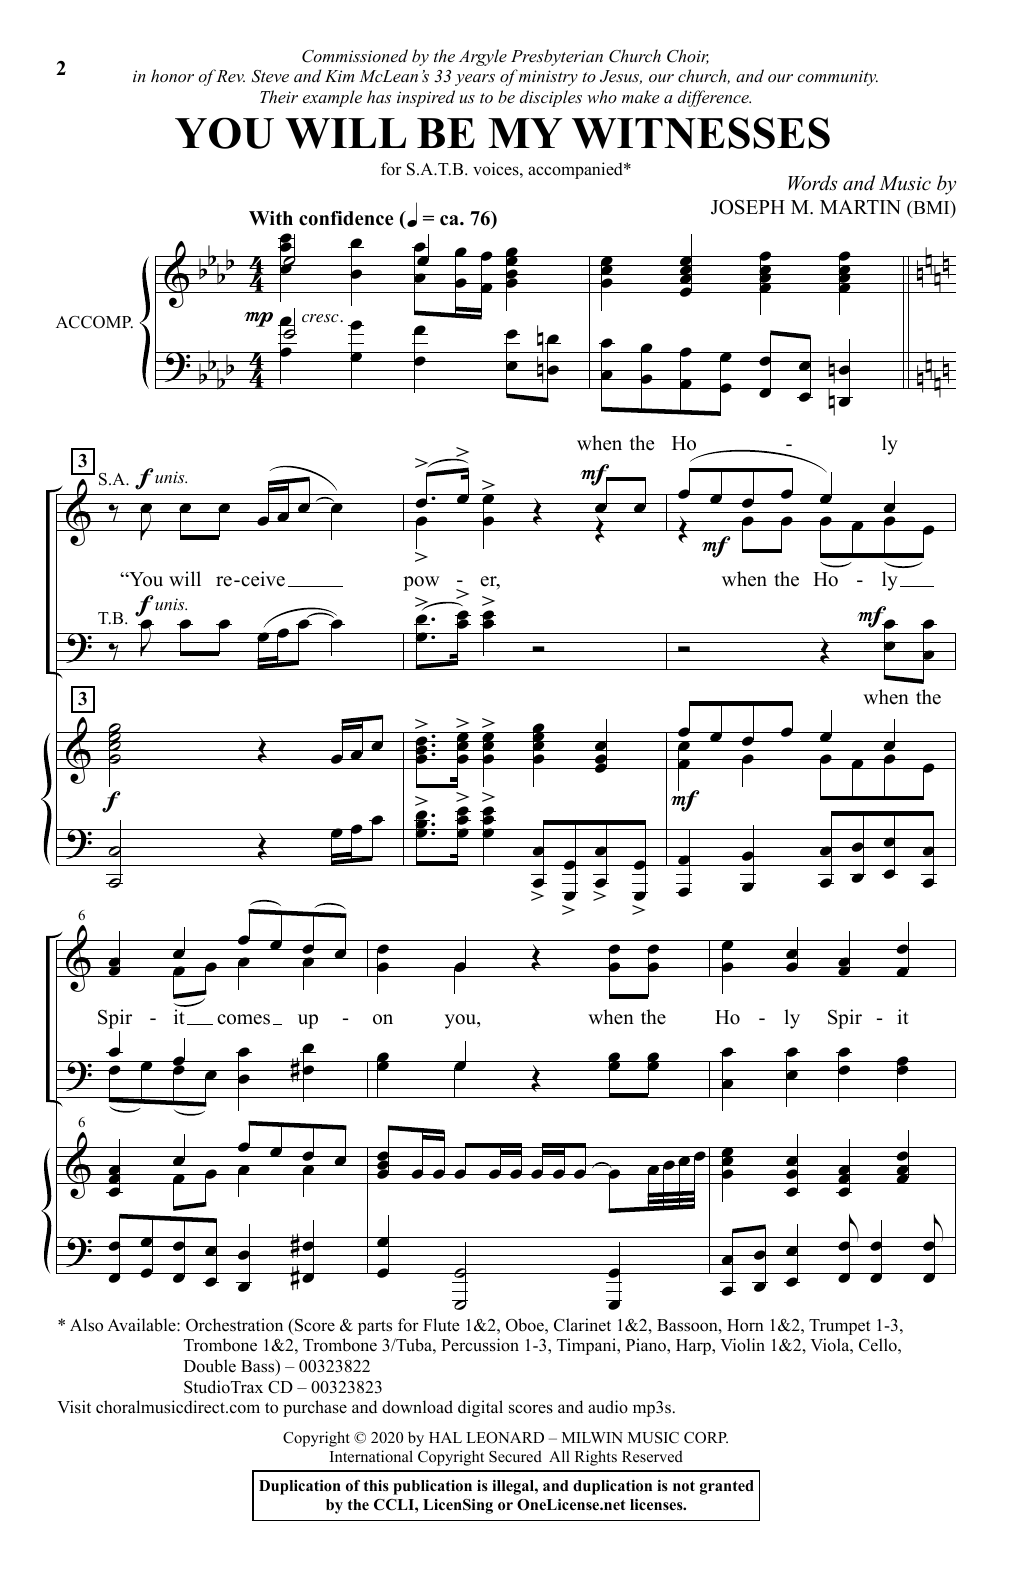 You Will Be My Witnesses (SATB Choir)